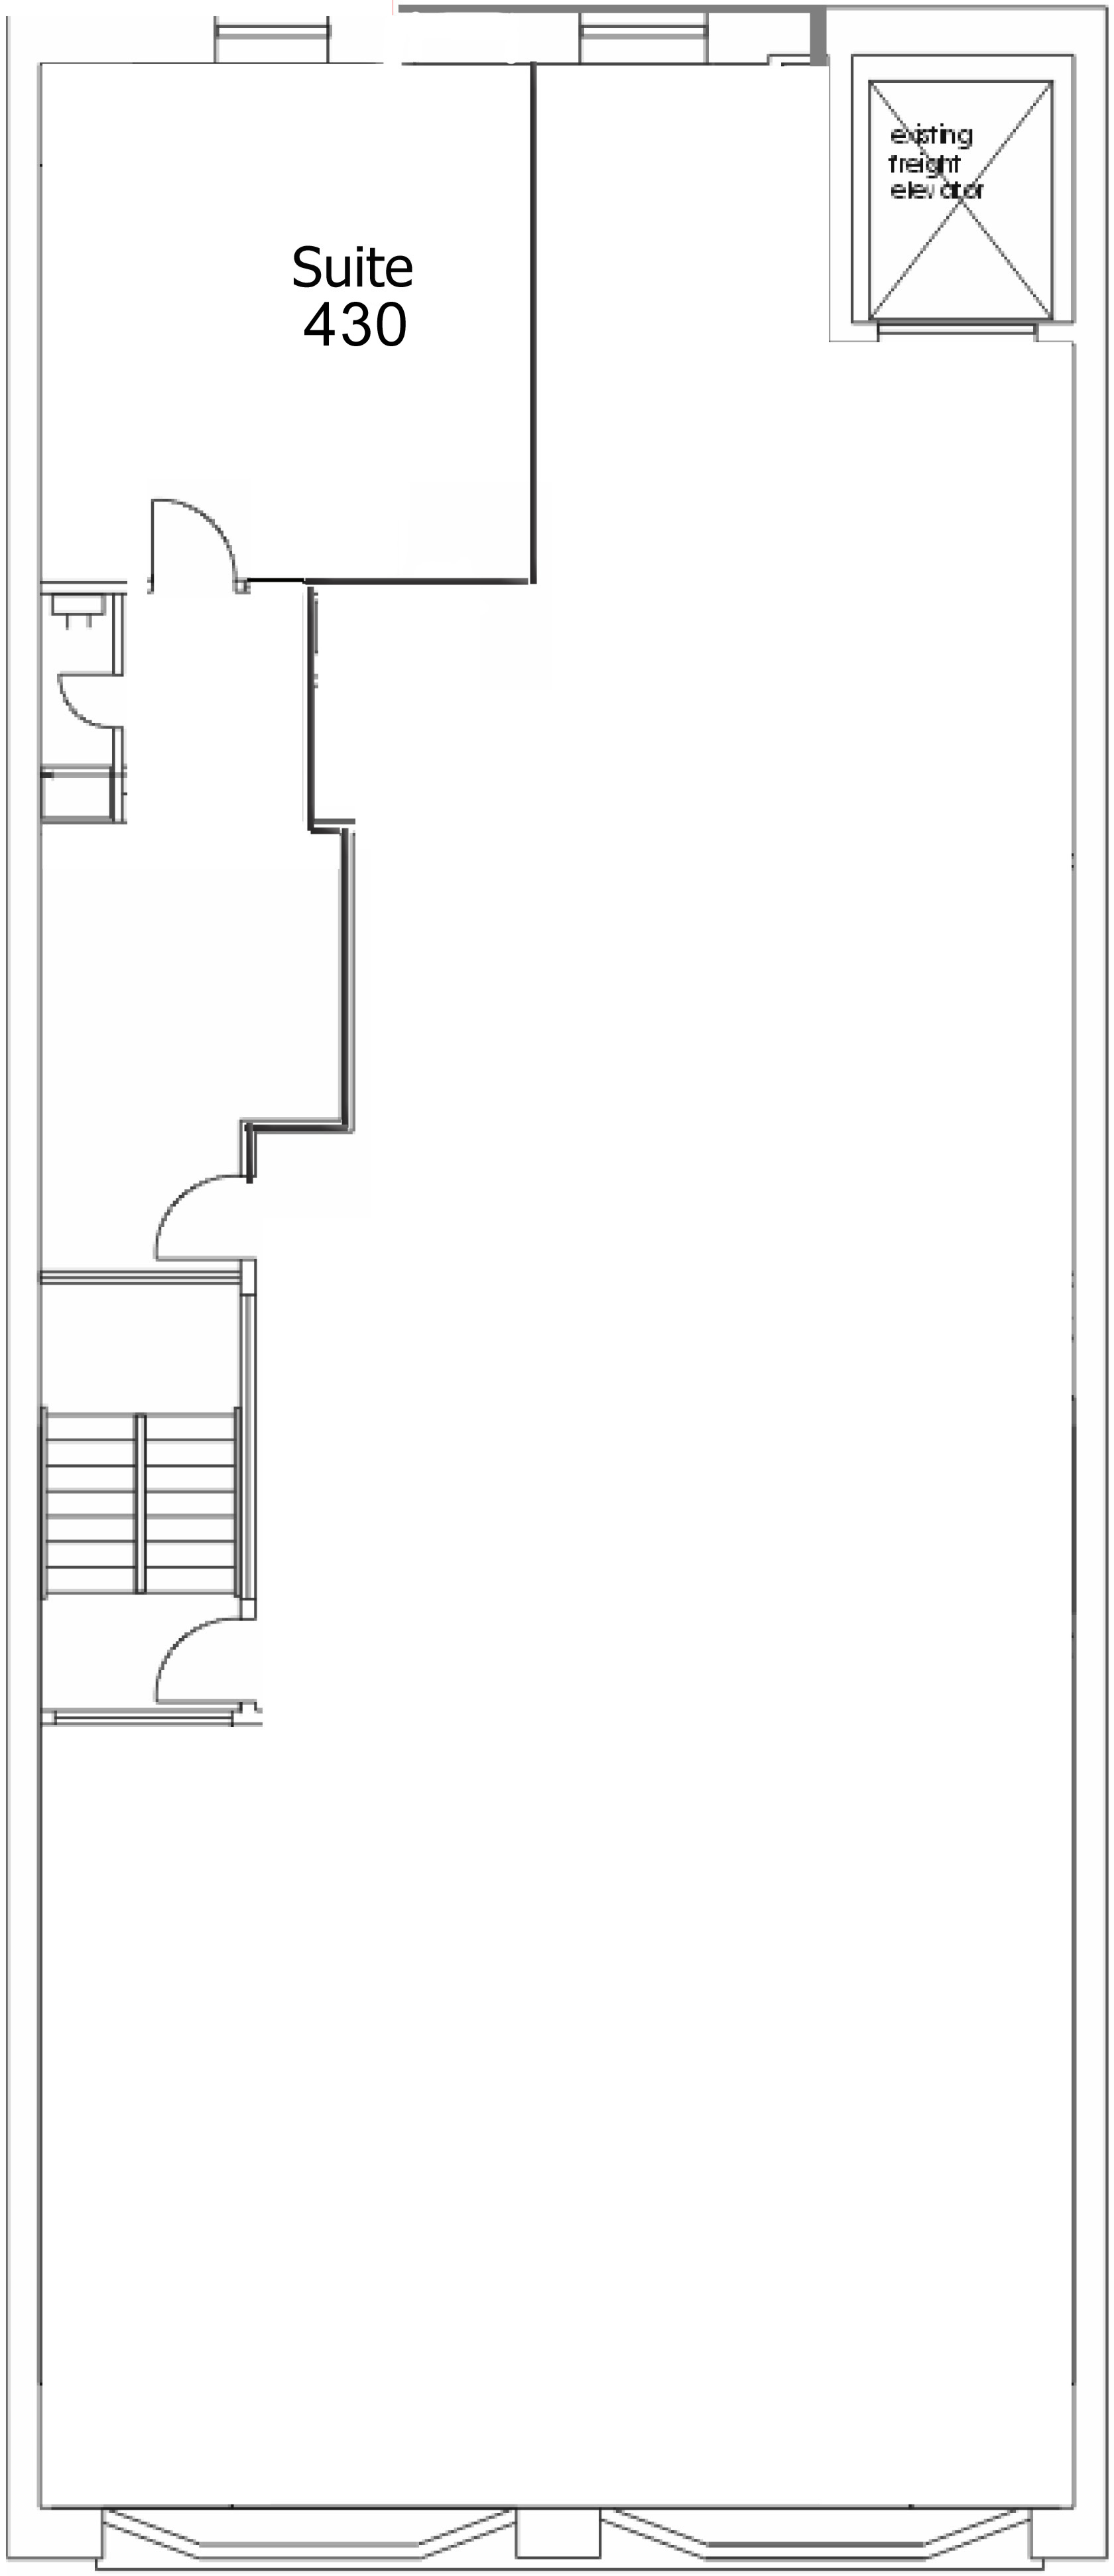 Suite 430 Floor Plan